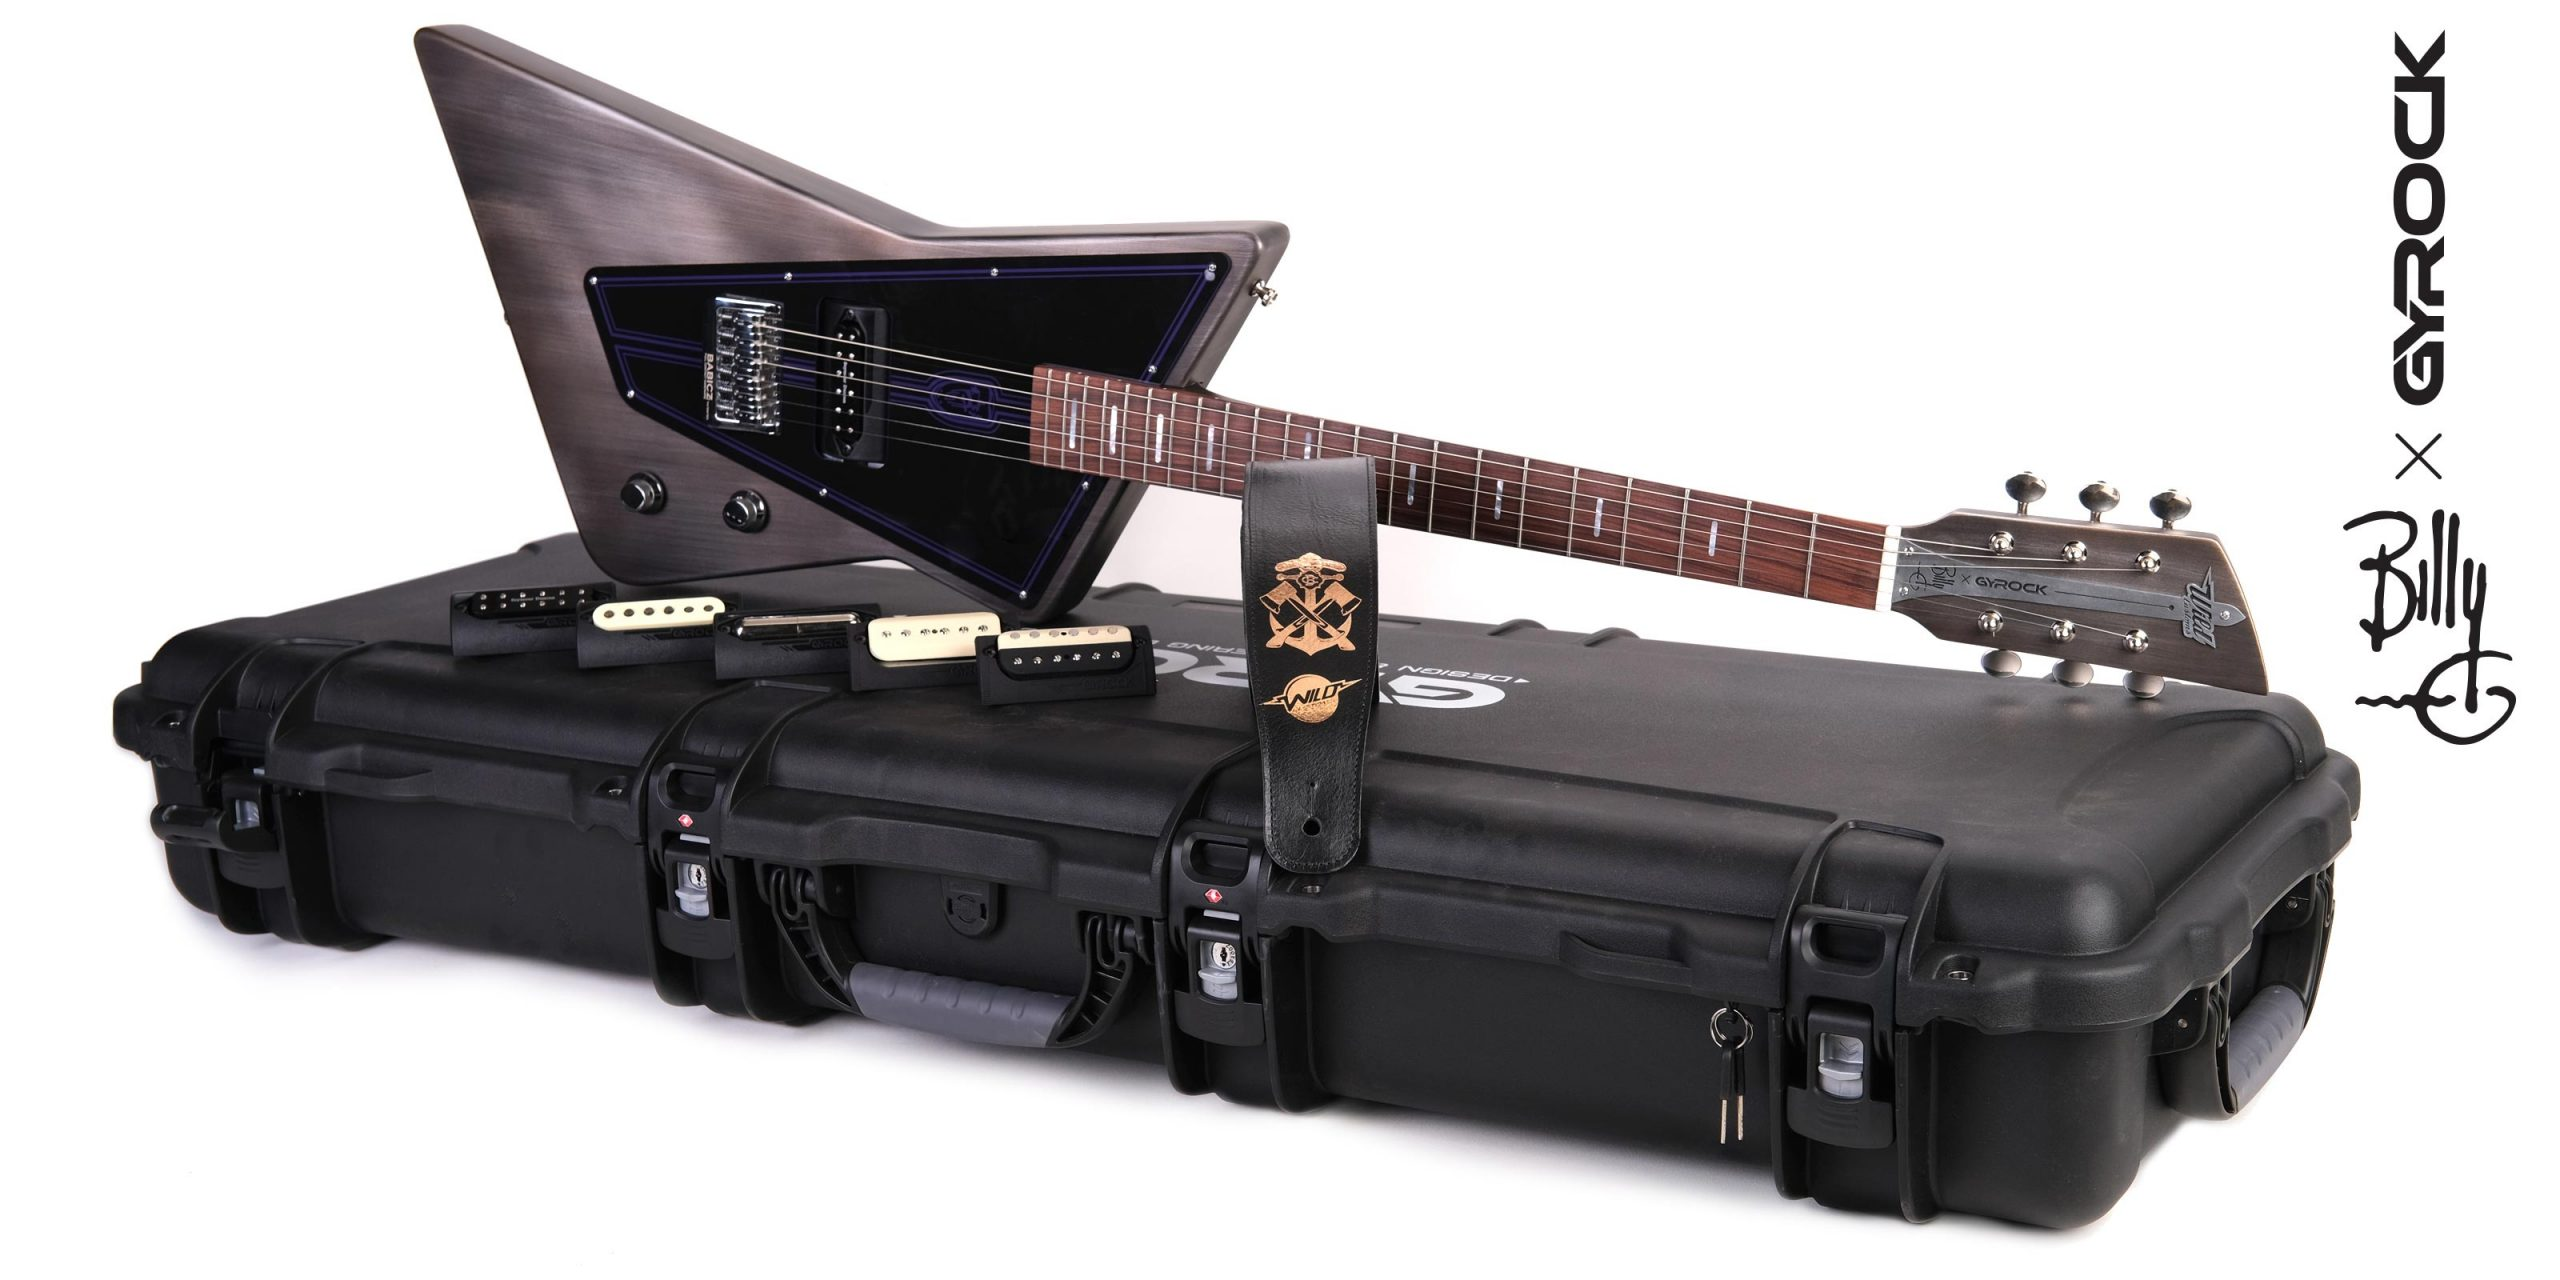 Wild Customs Introduces The Billy F. Gibbons Special